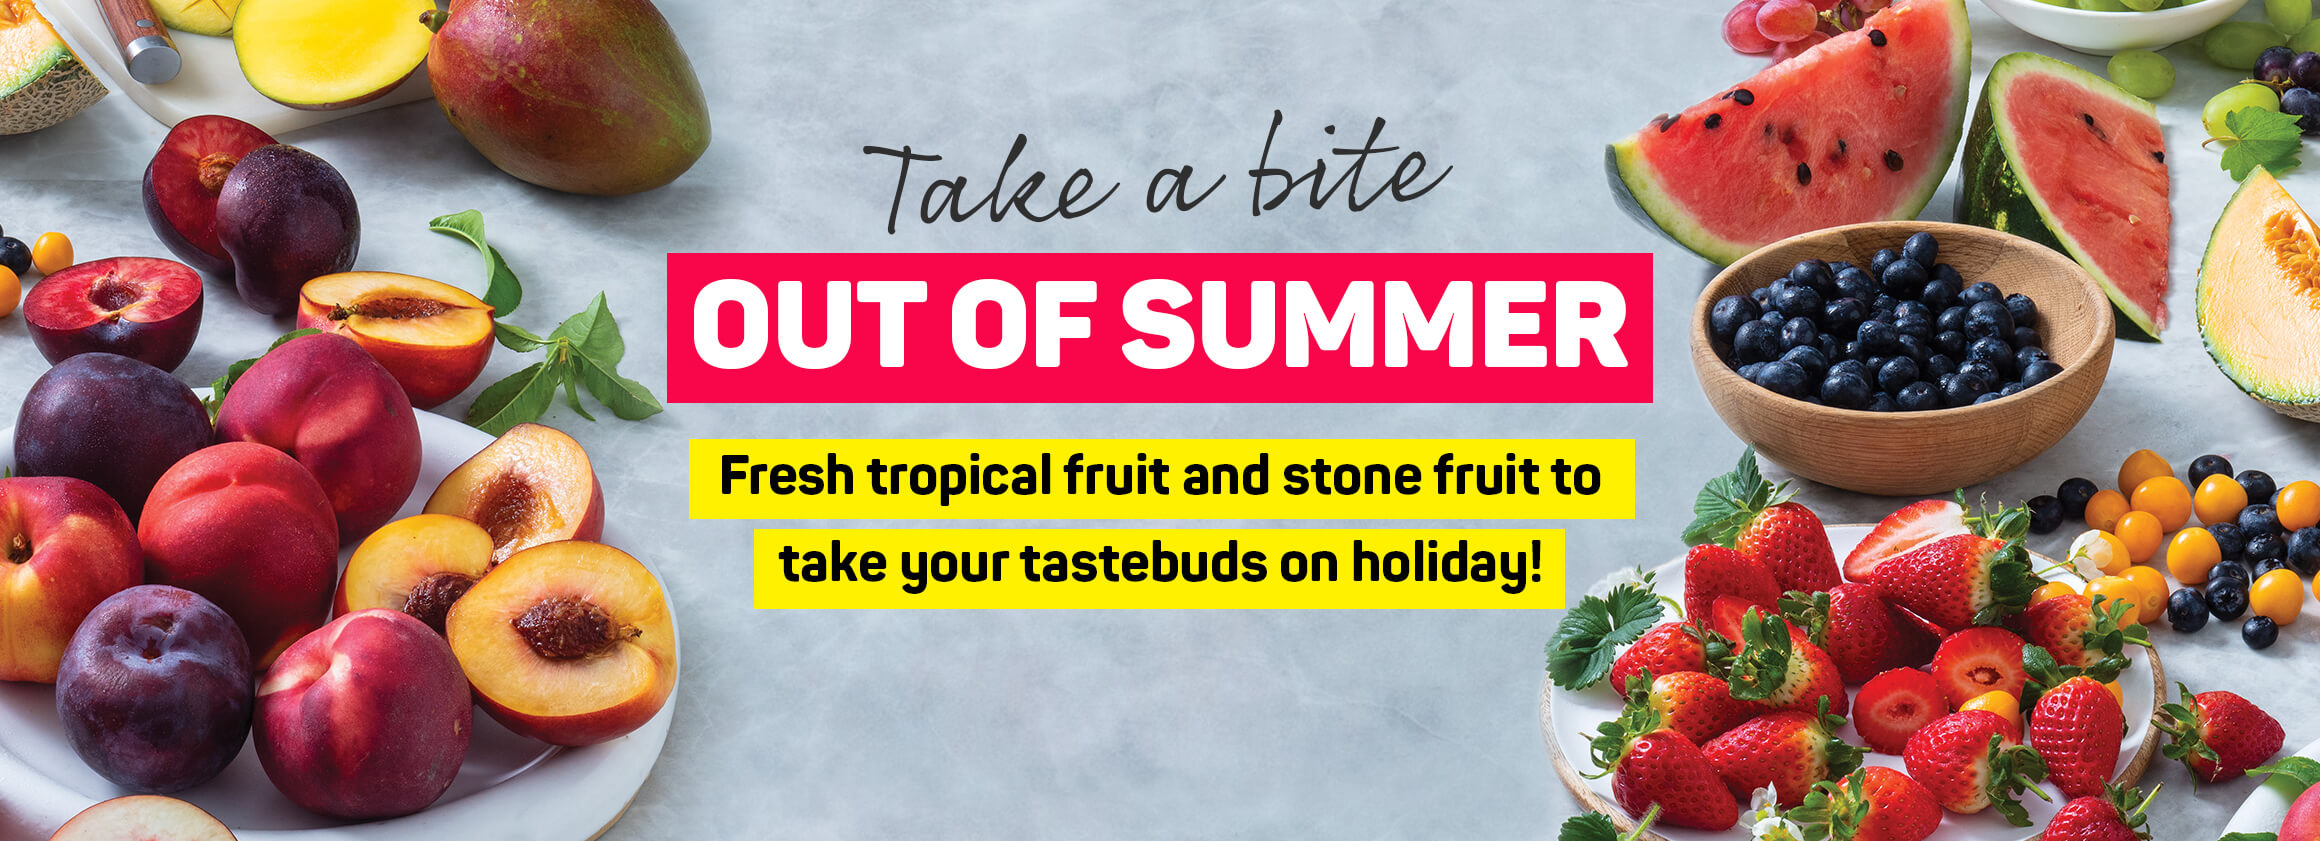 Take a bite out of summer